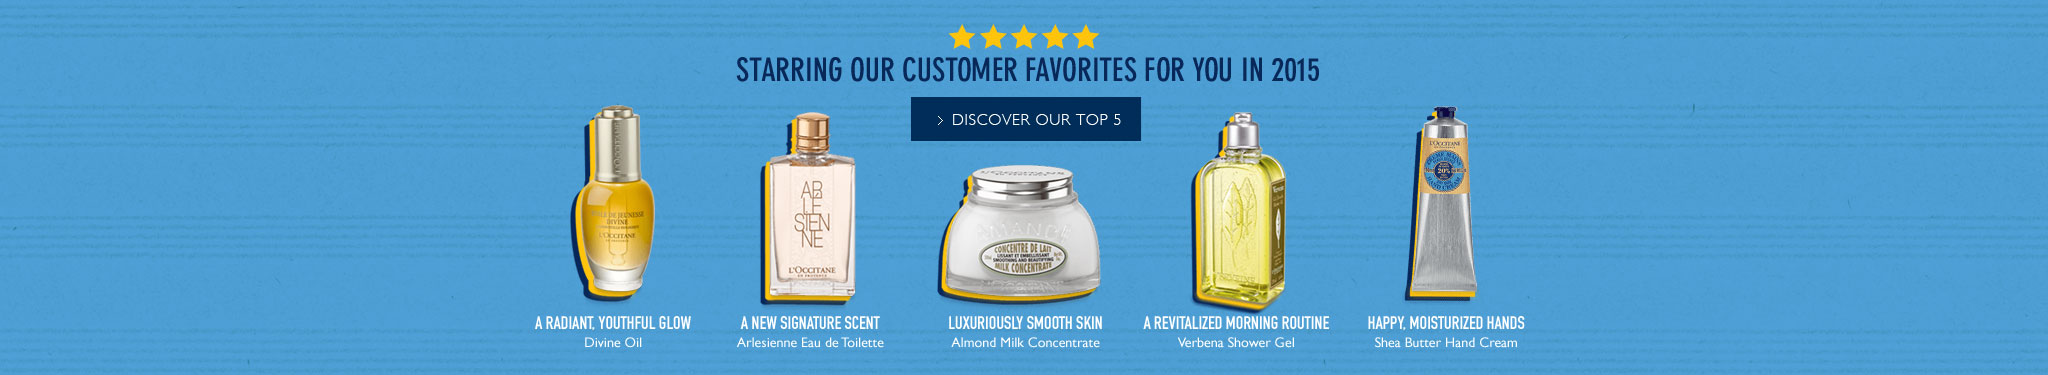 Starring our customer favorites for you in 2015